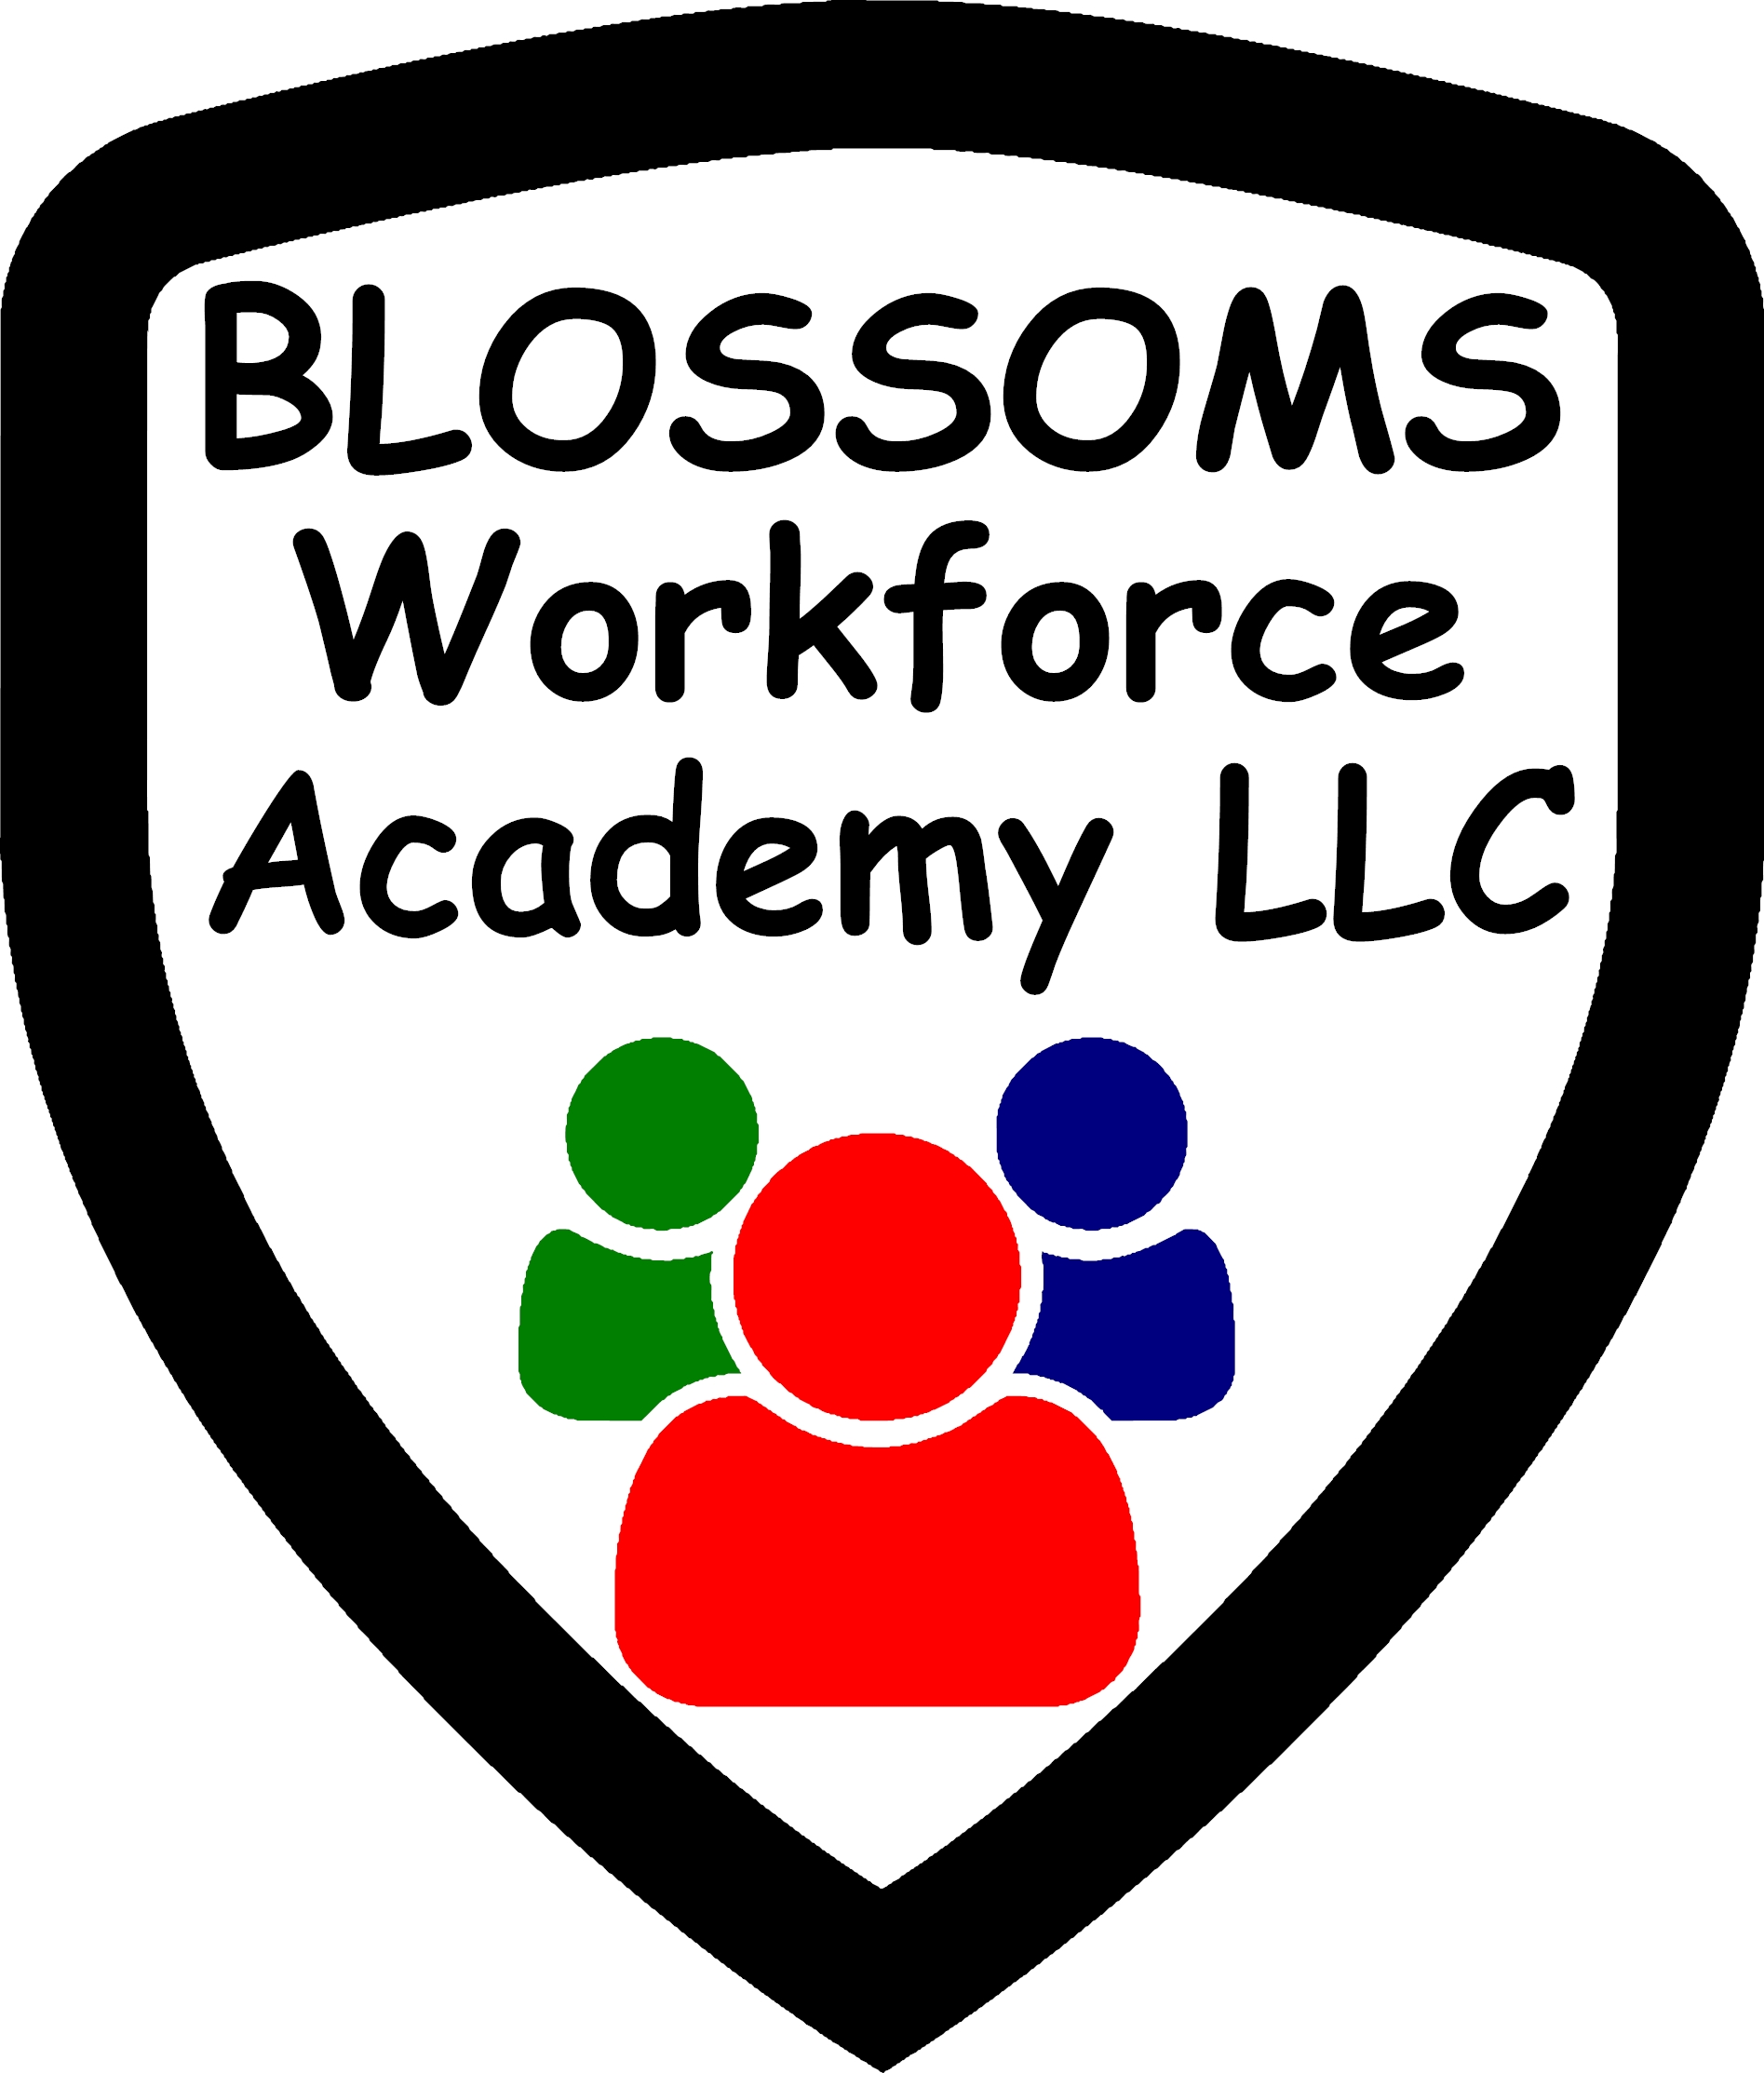 Blossoms Workforce Academy